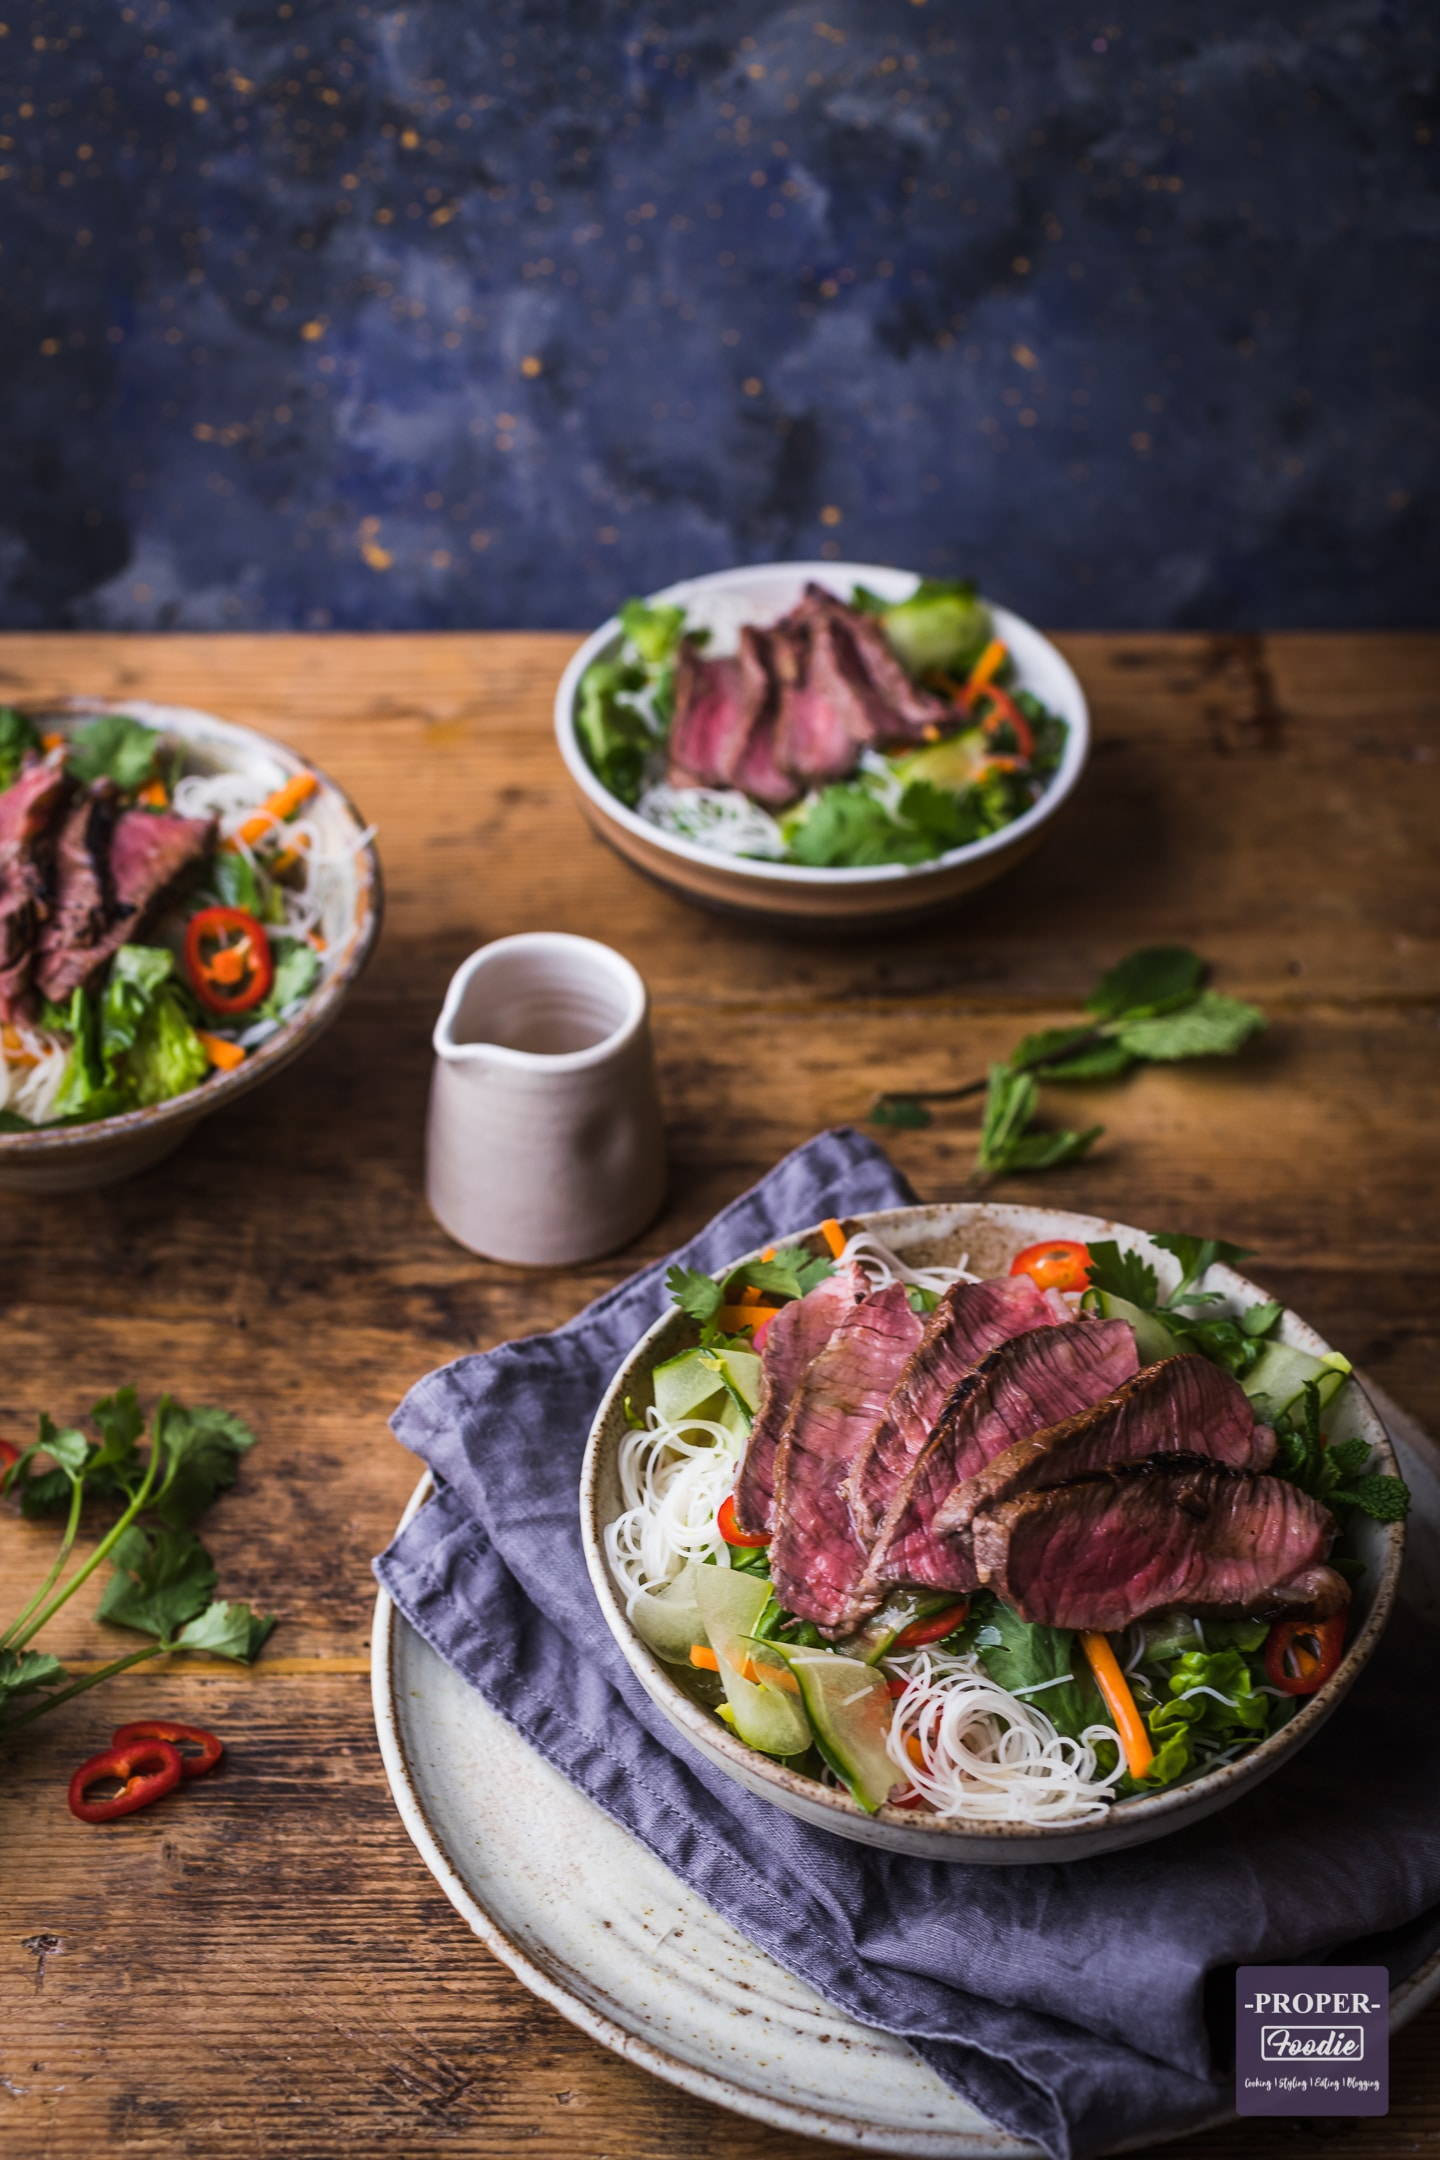 Beef noodle salad served up in 3 bowls with a small jug of salad dressing in the centre